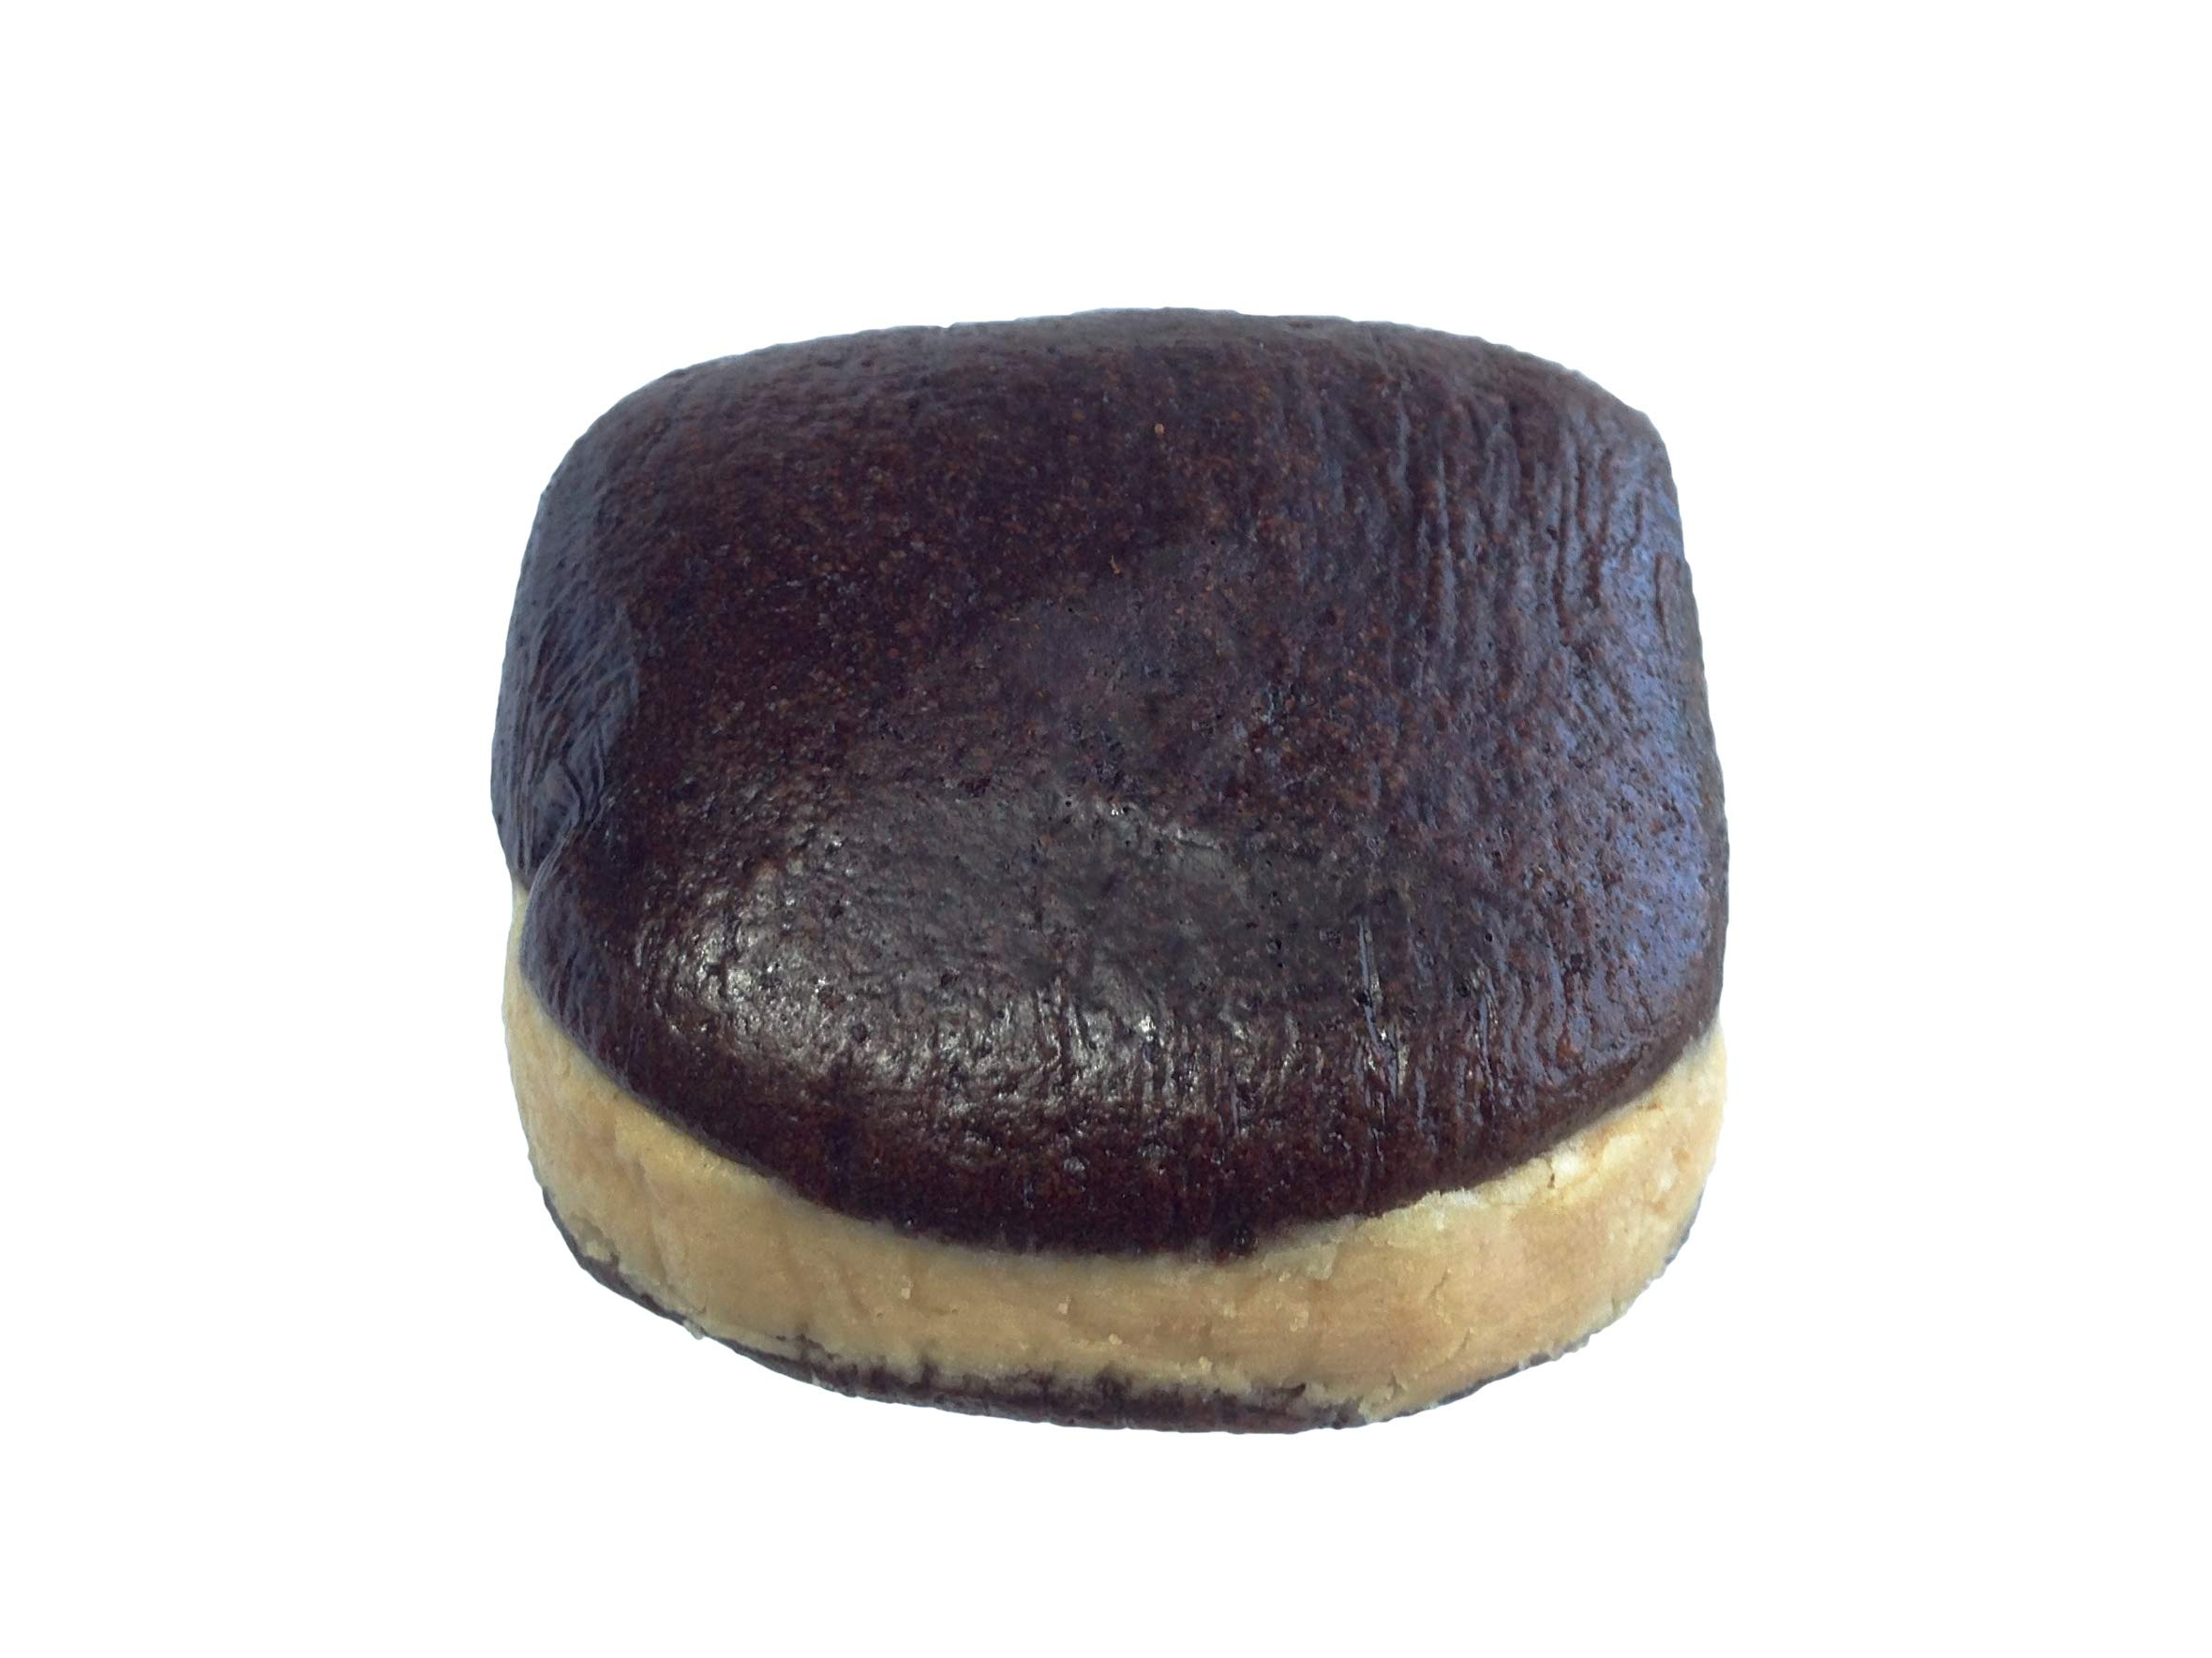 Bird-in-Hand Bake Shop Chocolate Peanut Butter Lovers Whoopie Pies, Favorite Amish Food (Pack of 24) by AmishTastes (Image #2)